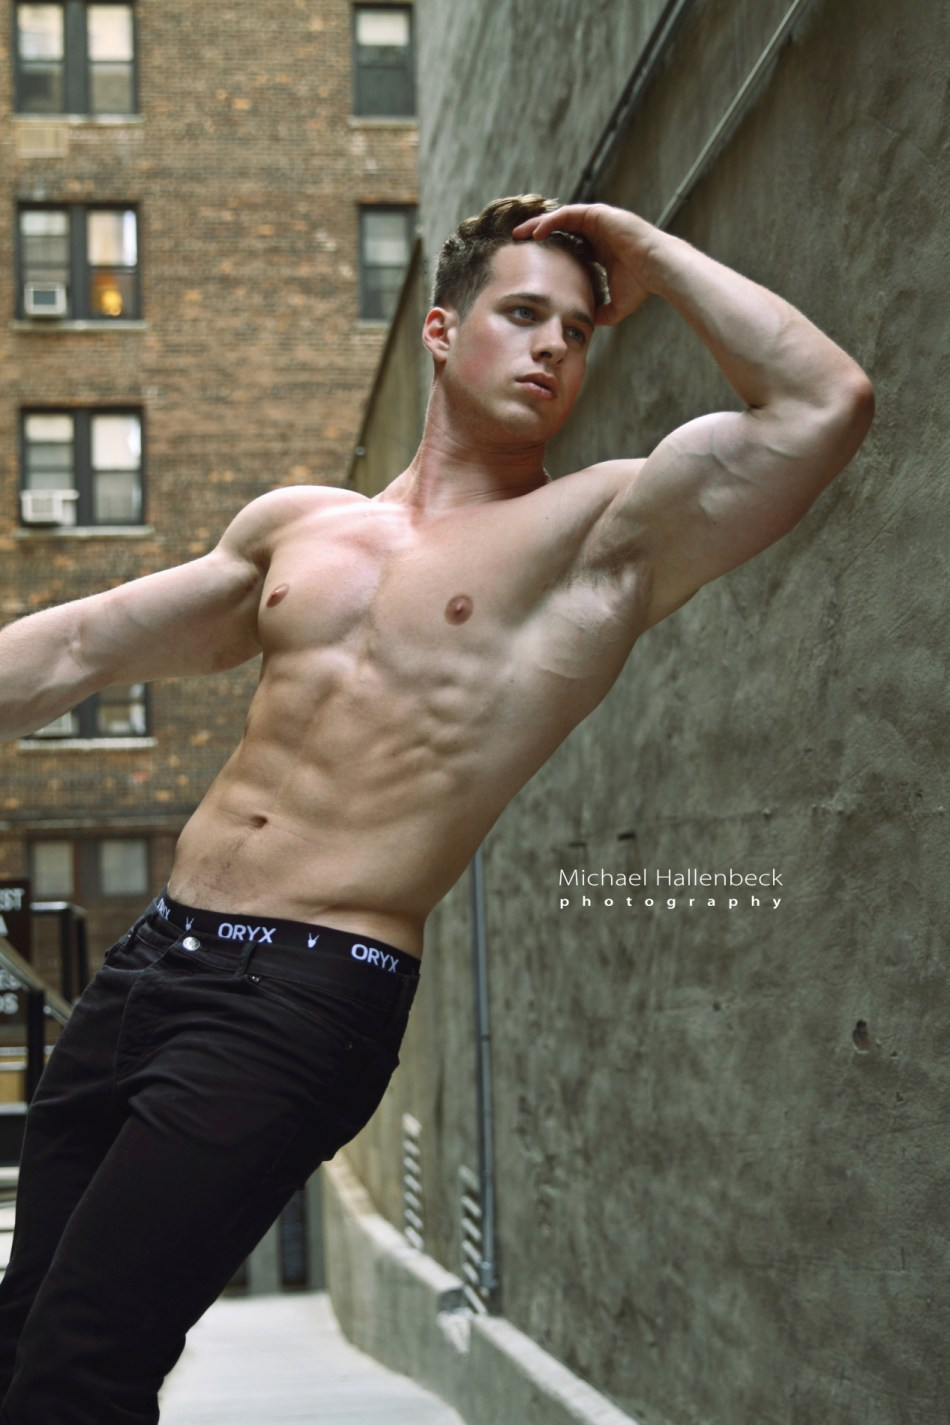 nick-sandell-by-michael-hallenbeck-pnv-network11